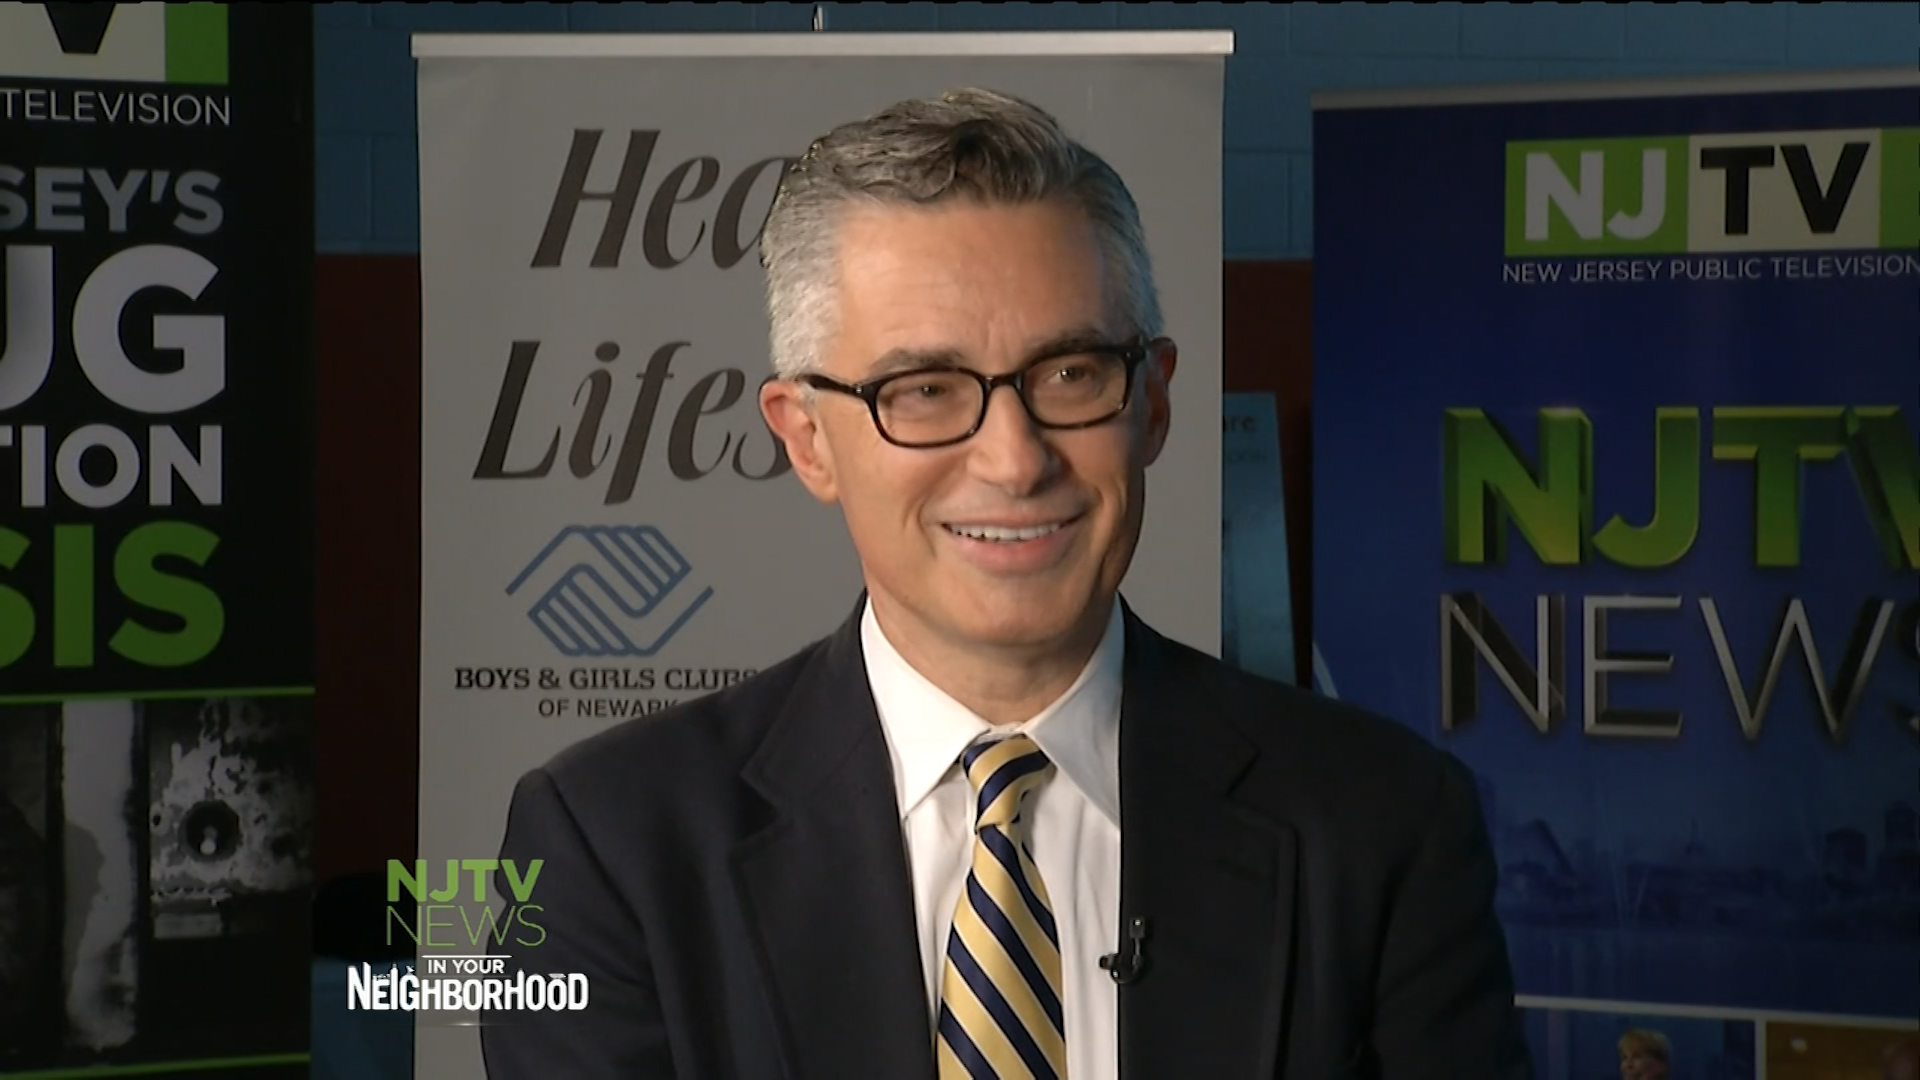 Former Gov. McGreevey: Strong Connection Between Addiction and Incarceration